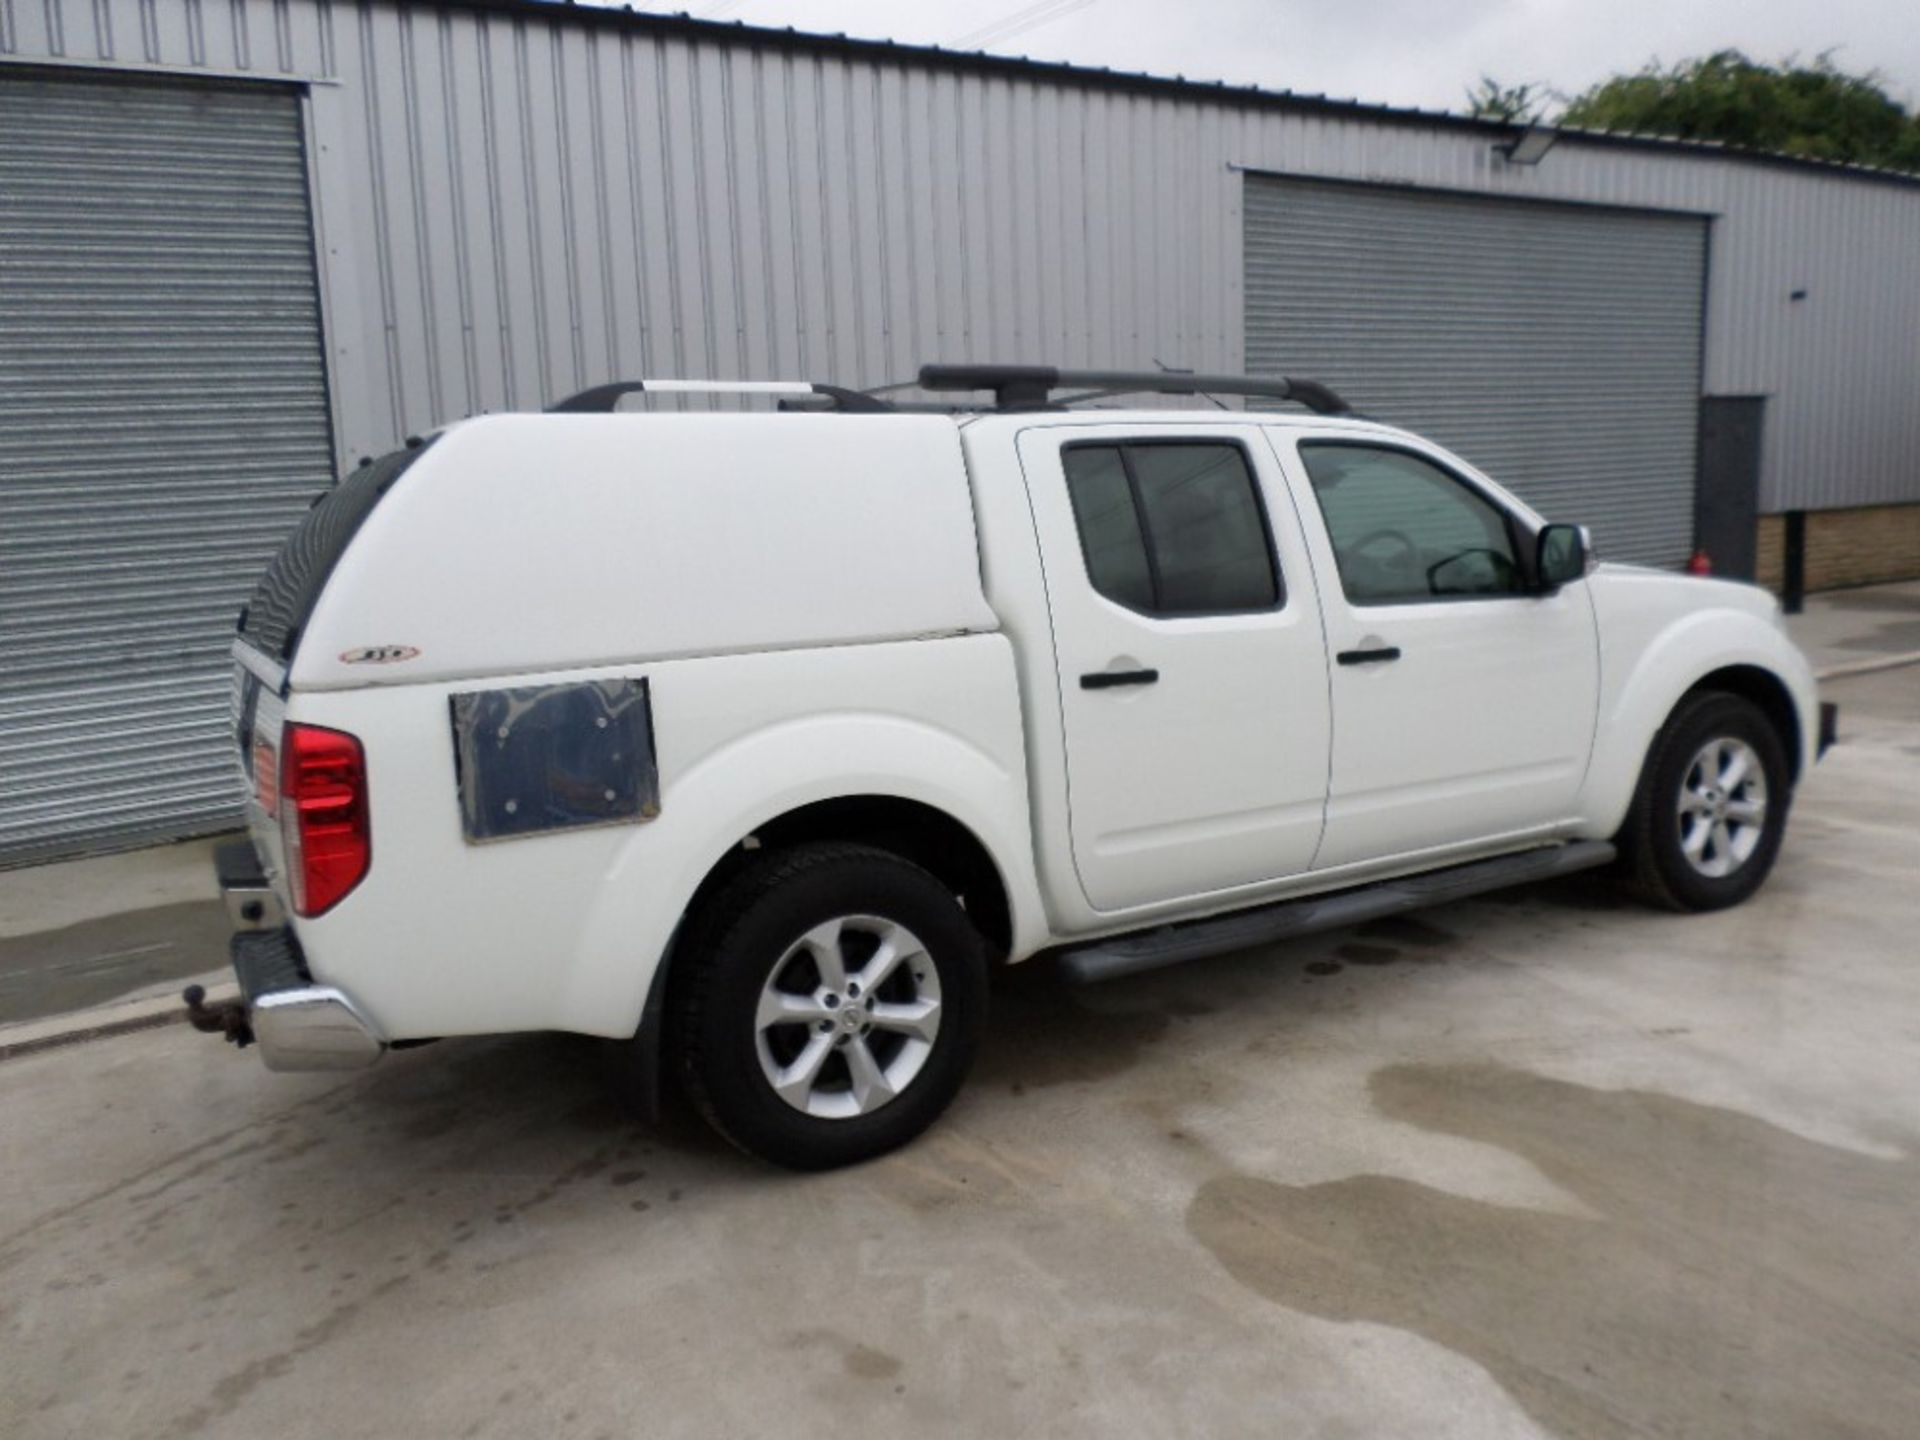 2011 NISSAN NAVARA DCI 188 TEKNA D/CAB PICKUP (LOCATION SHEFFIELD) UNREGISTERED EX MOD, 115121M ( - Image 4 of 6